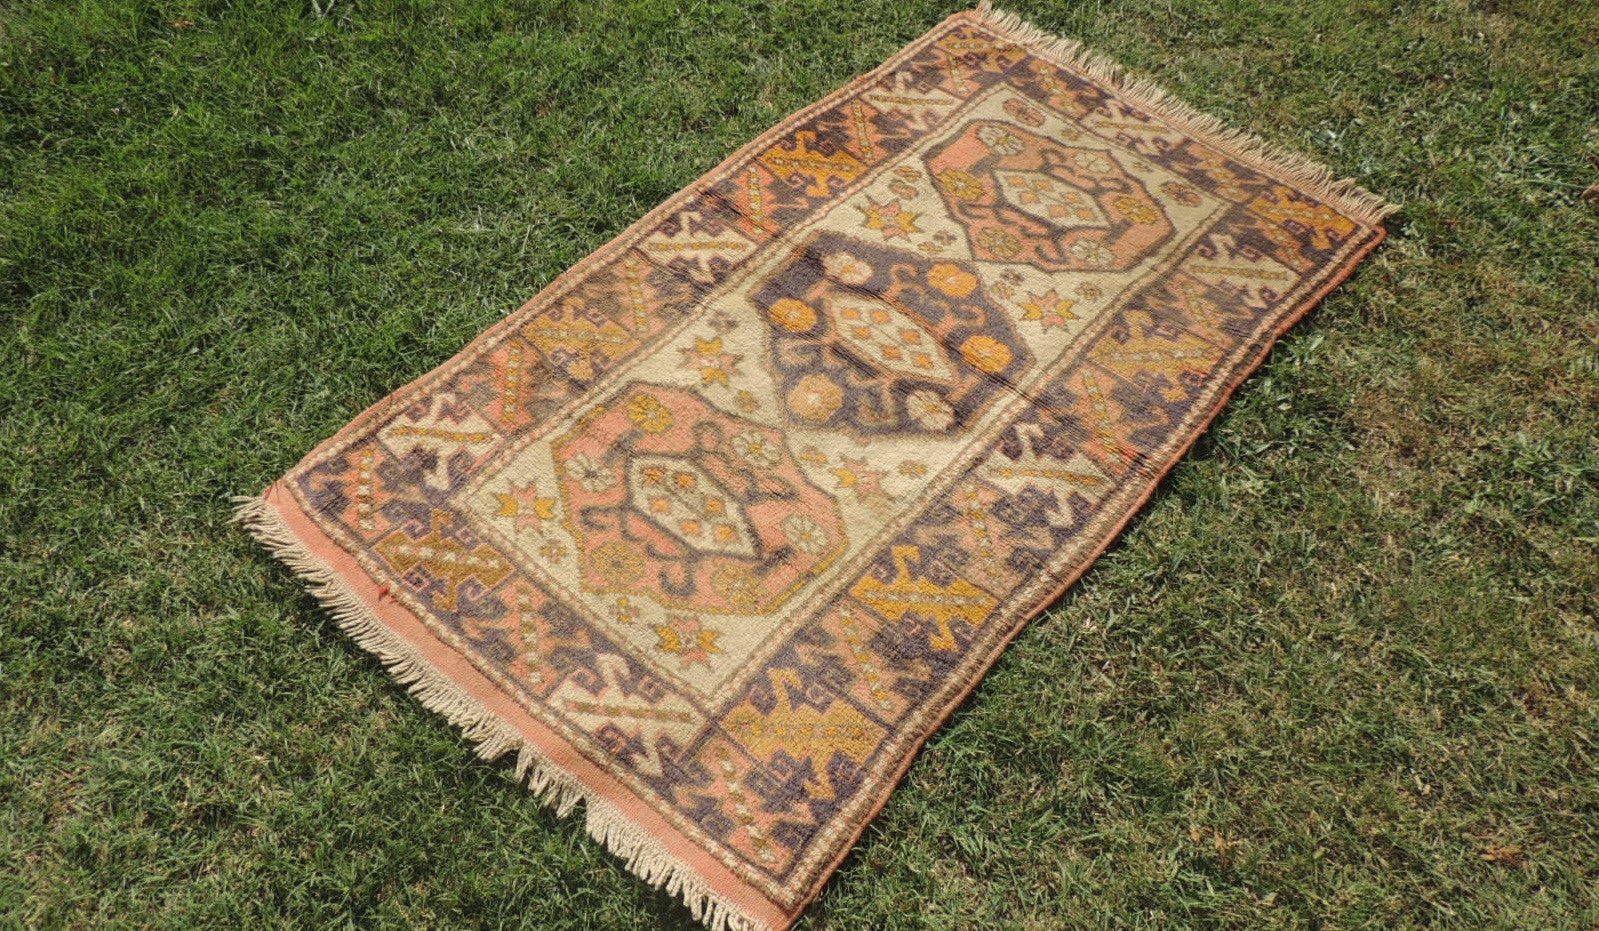 3x5 ft. Decorative Turkish Floor Rug